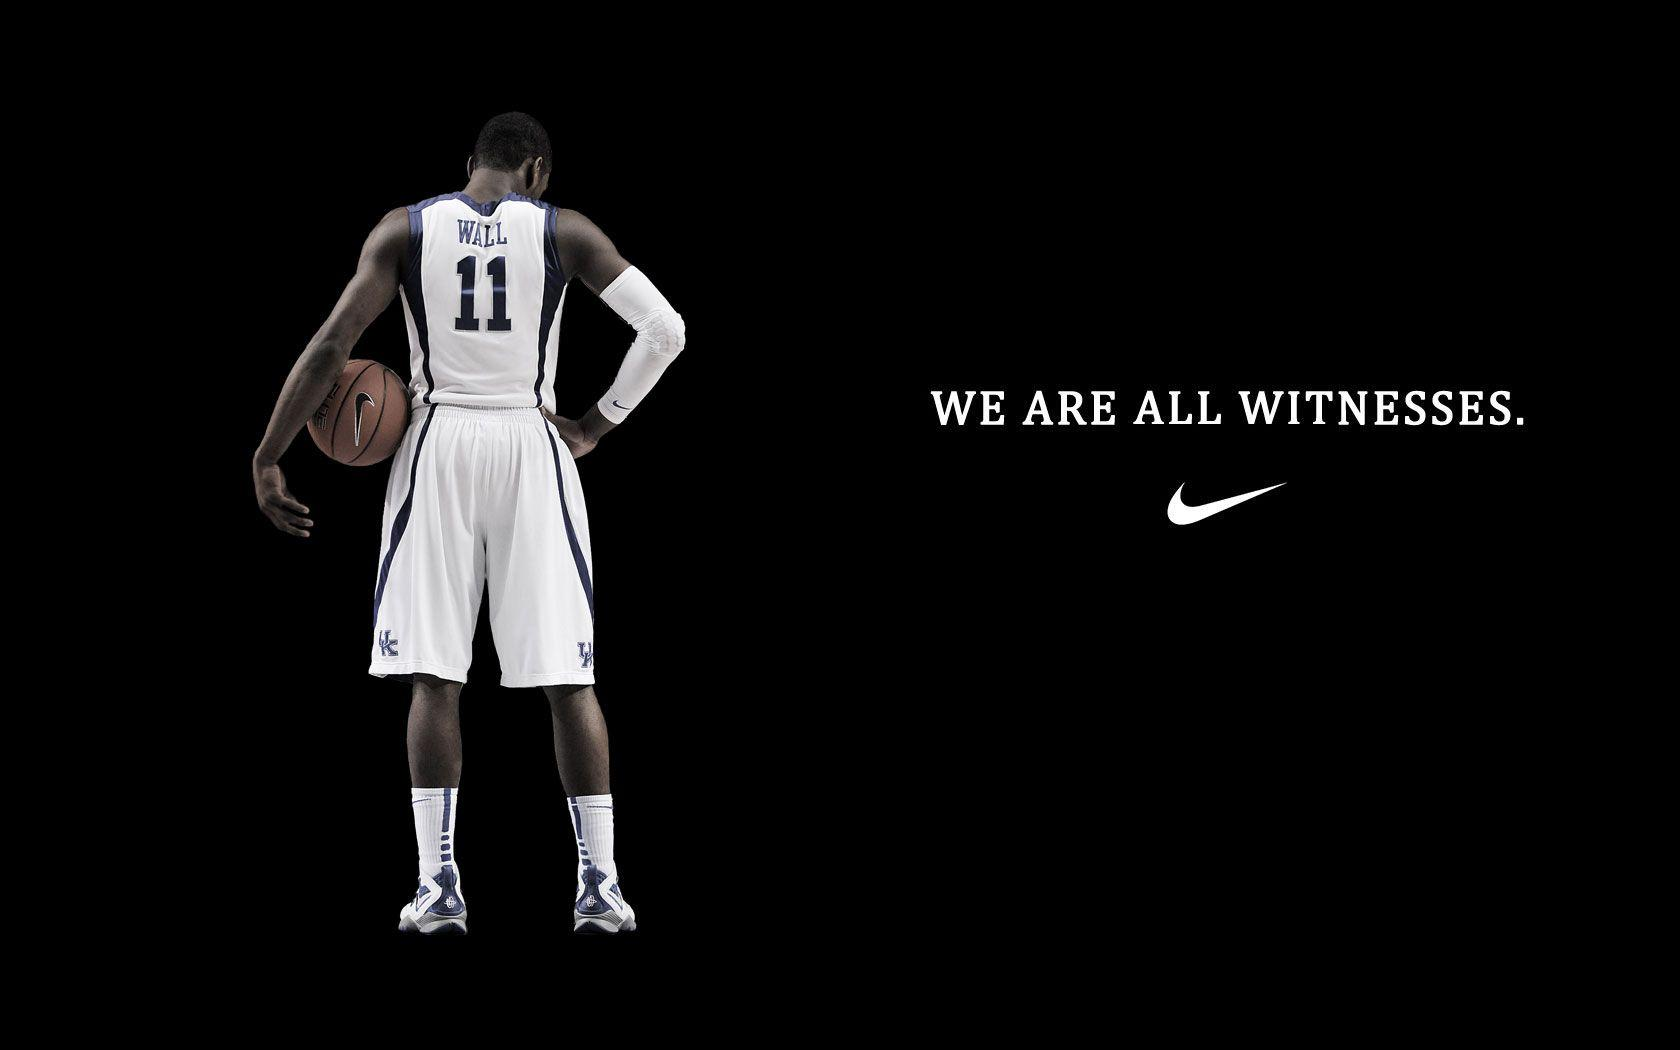 nike basketball quotes wallpapers images pictures becuo